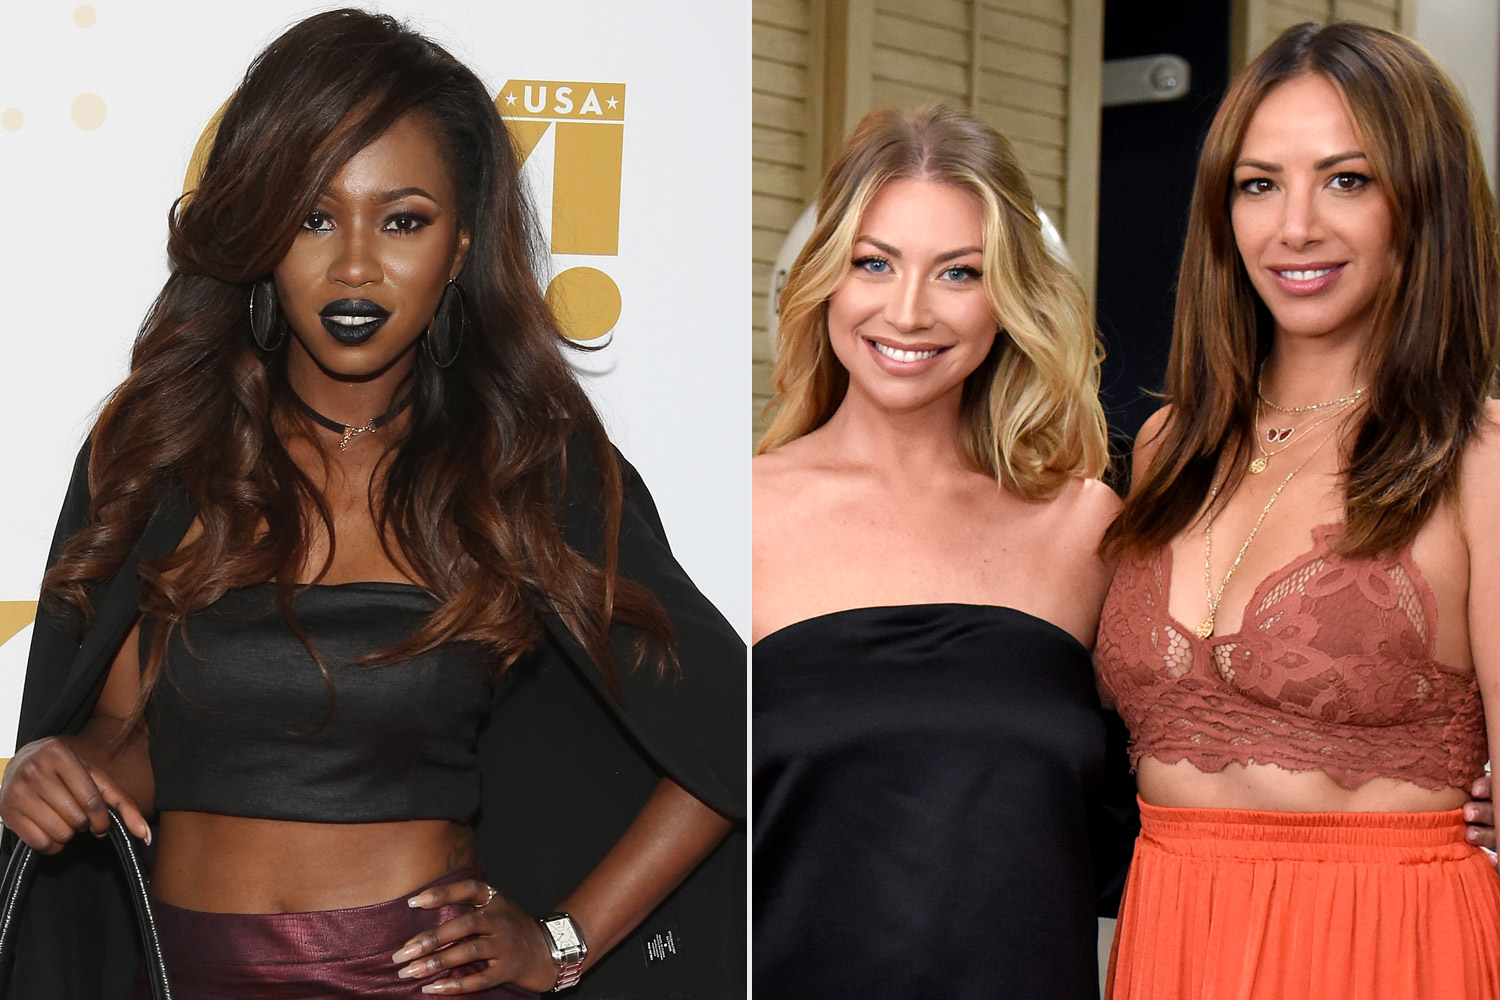 Faith Stowers split with Stassi and Kristen Doute